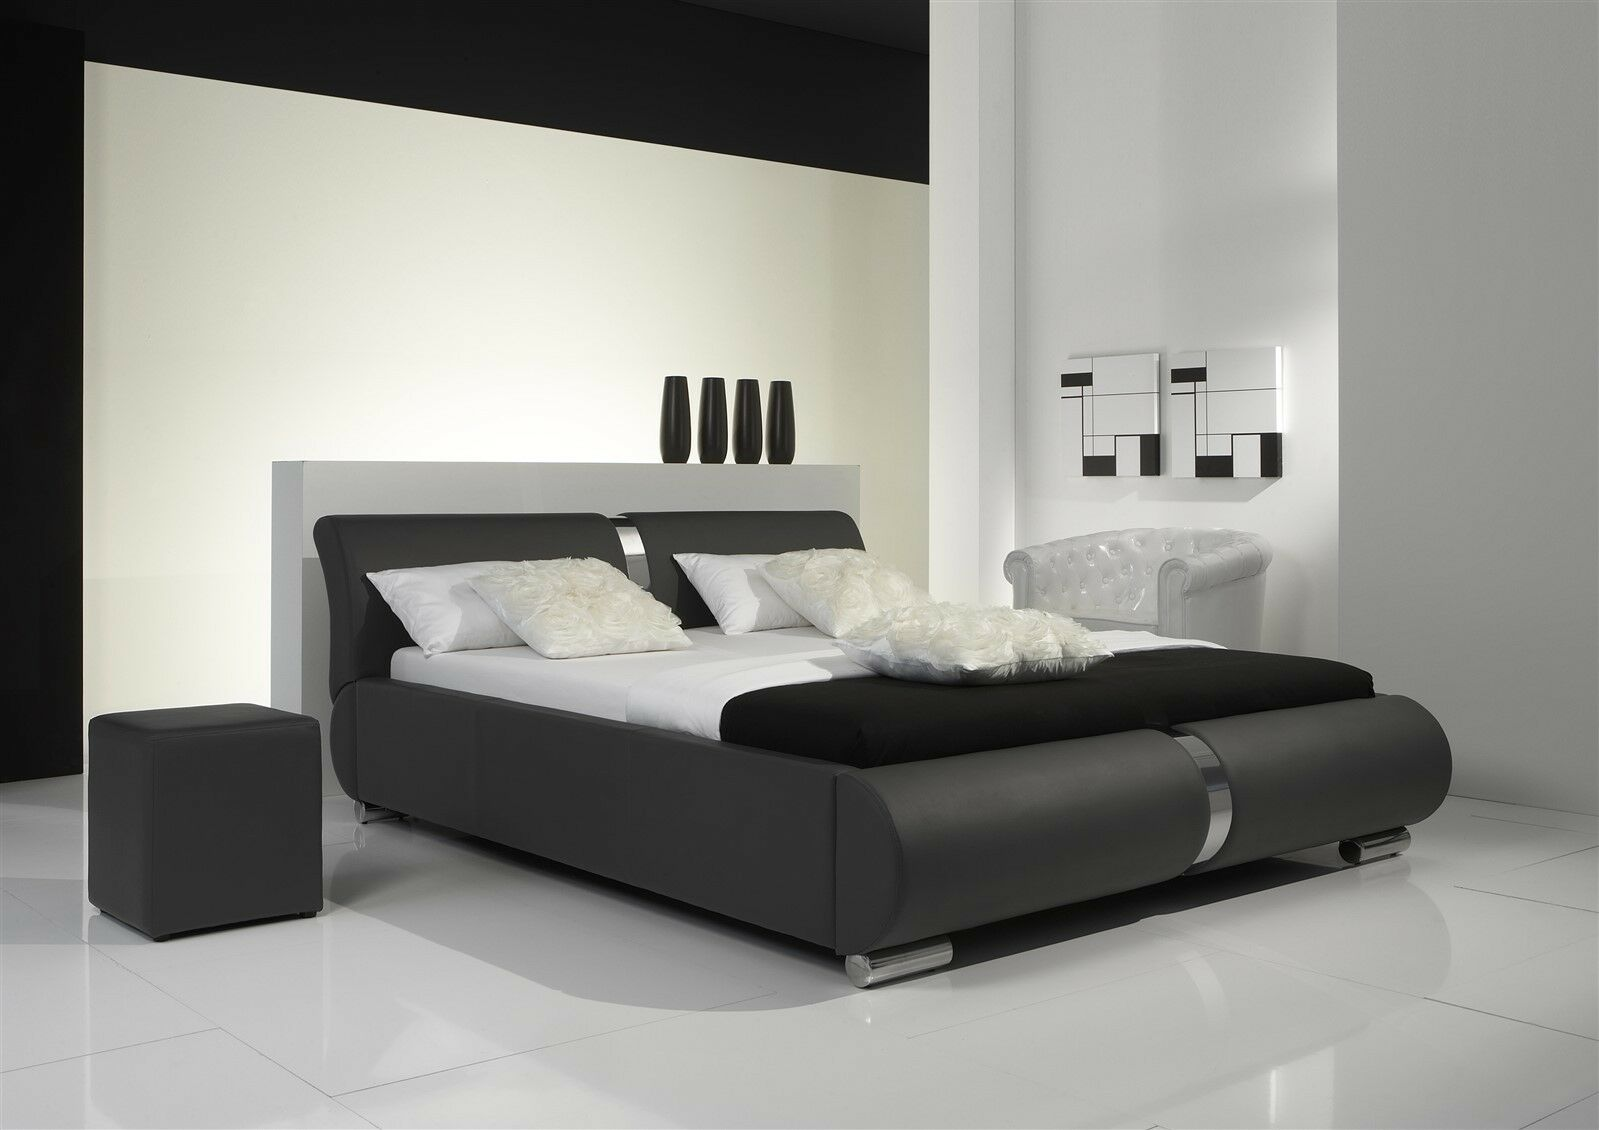 polsterbett bett doppelbett tagesbett dakar 160x200 cm. Black Bedroom Furniture Sets. Home Design Ideas